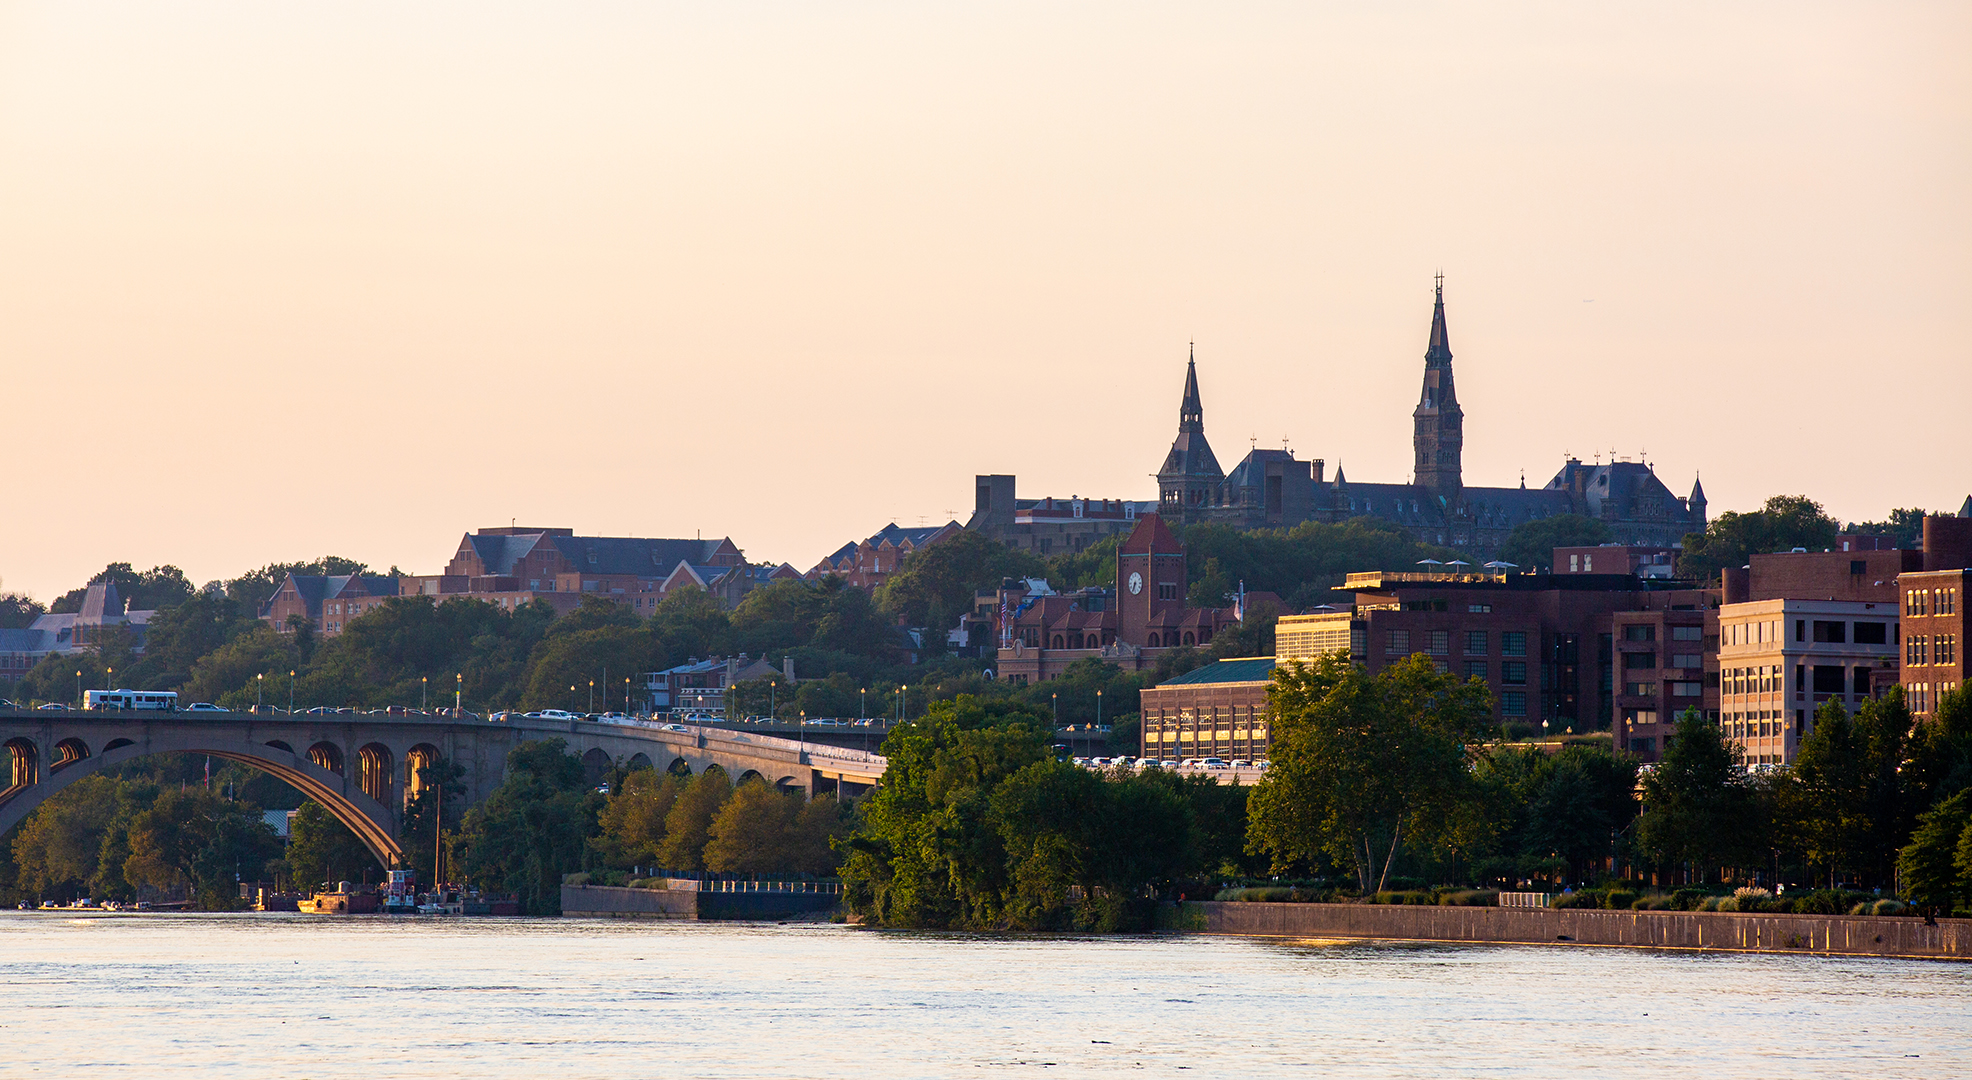 Photo of Georgetown University campus overlooking the river at sunset.